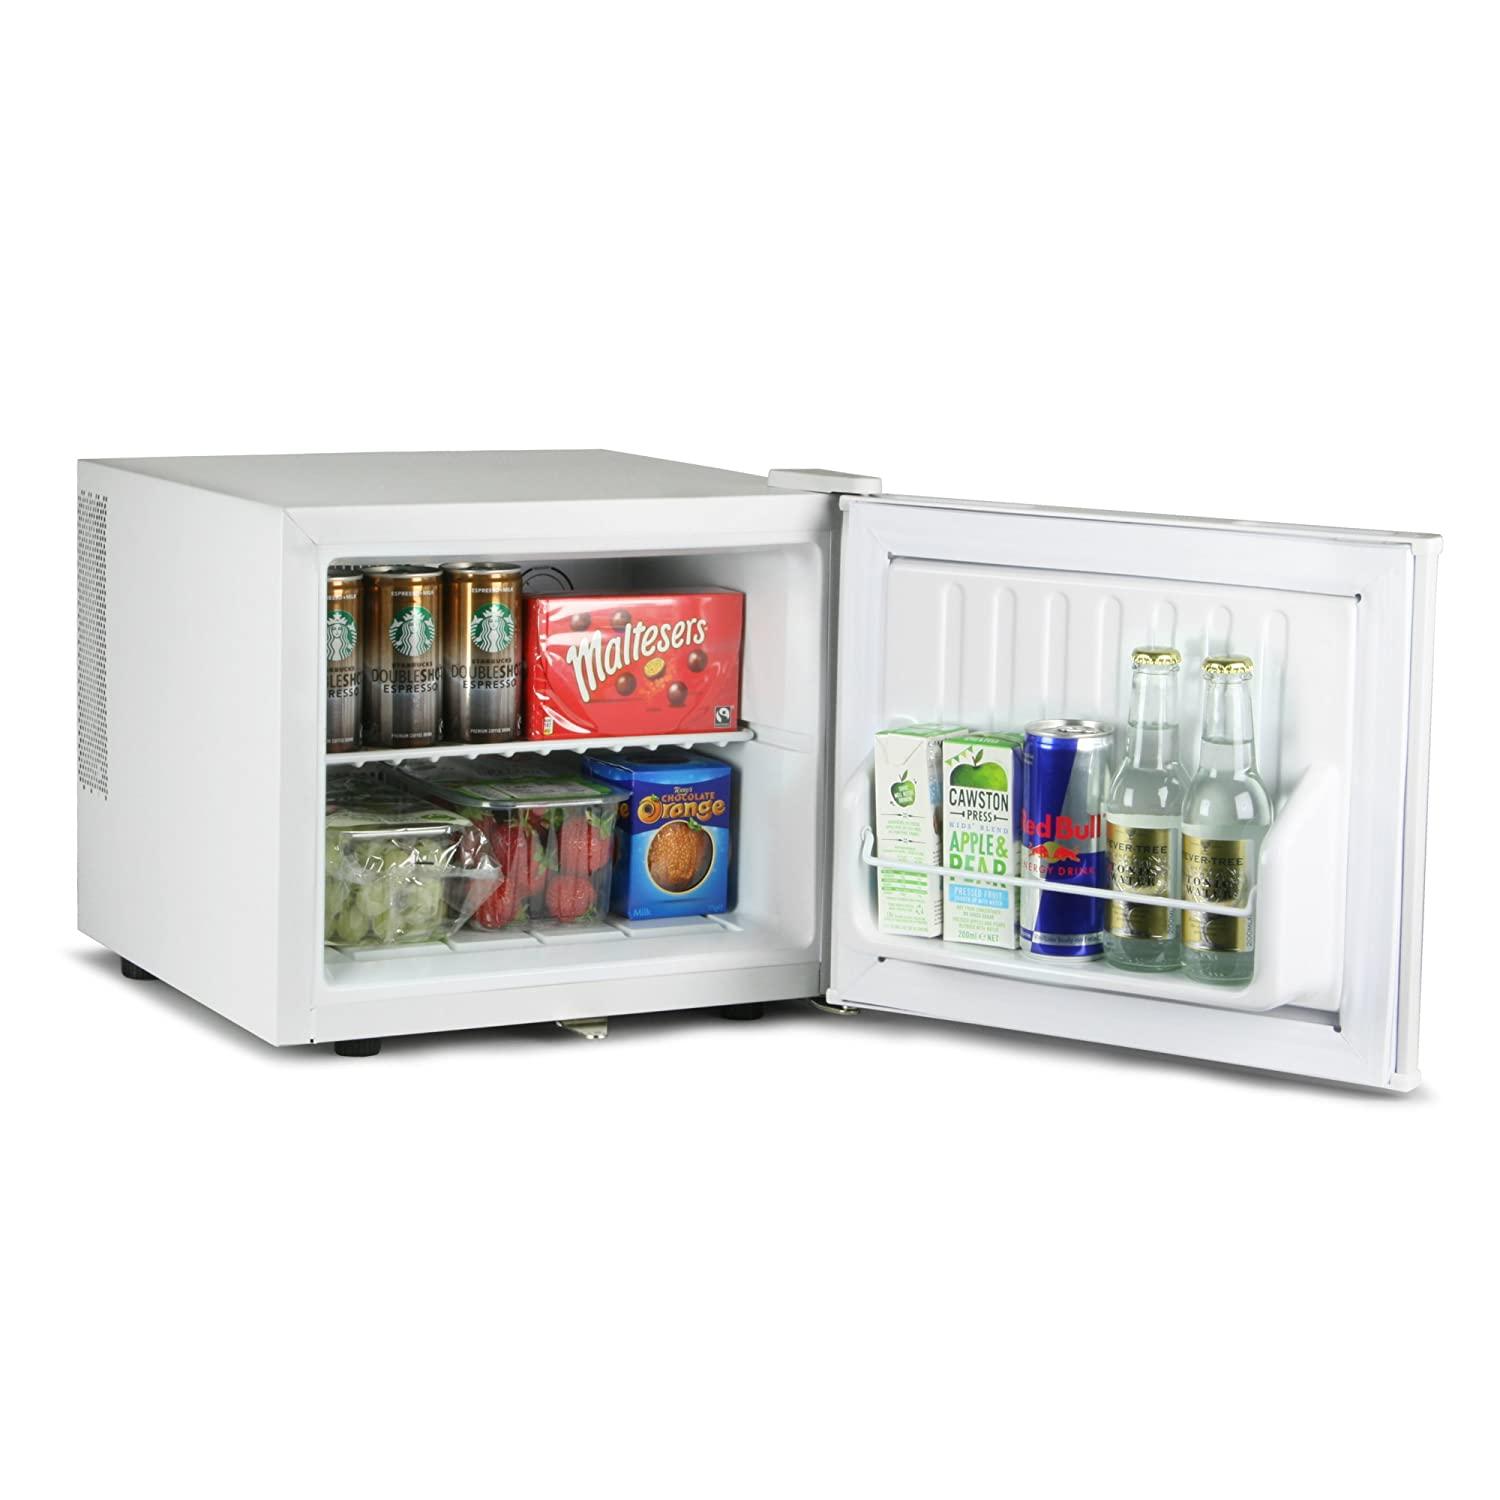 bar@drinkstuff ChillQuiet Mini Fridge 17ltr White - Lockable - Quiet Running Table Top Mini Bar [Energy Class B]